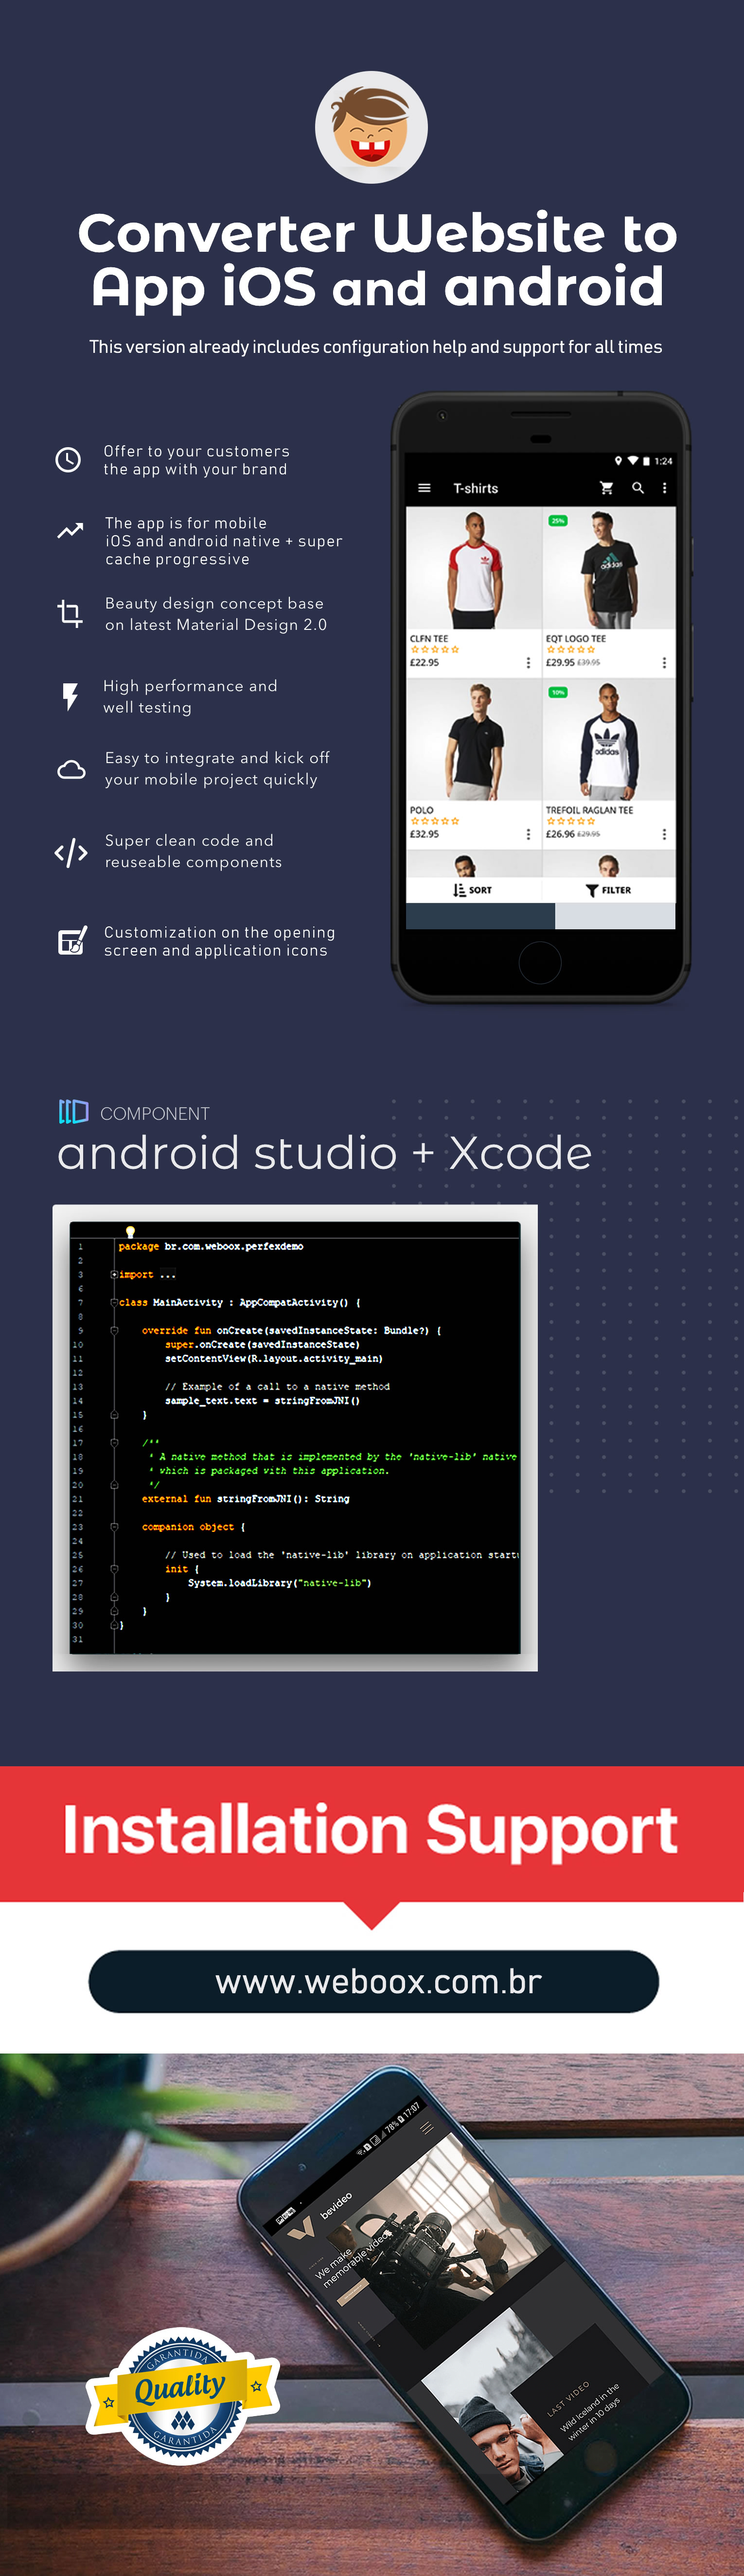 Weboox Convert - Website to iOS and Android App Native PRO - 3